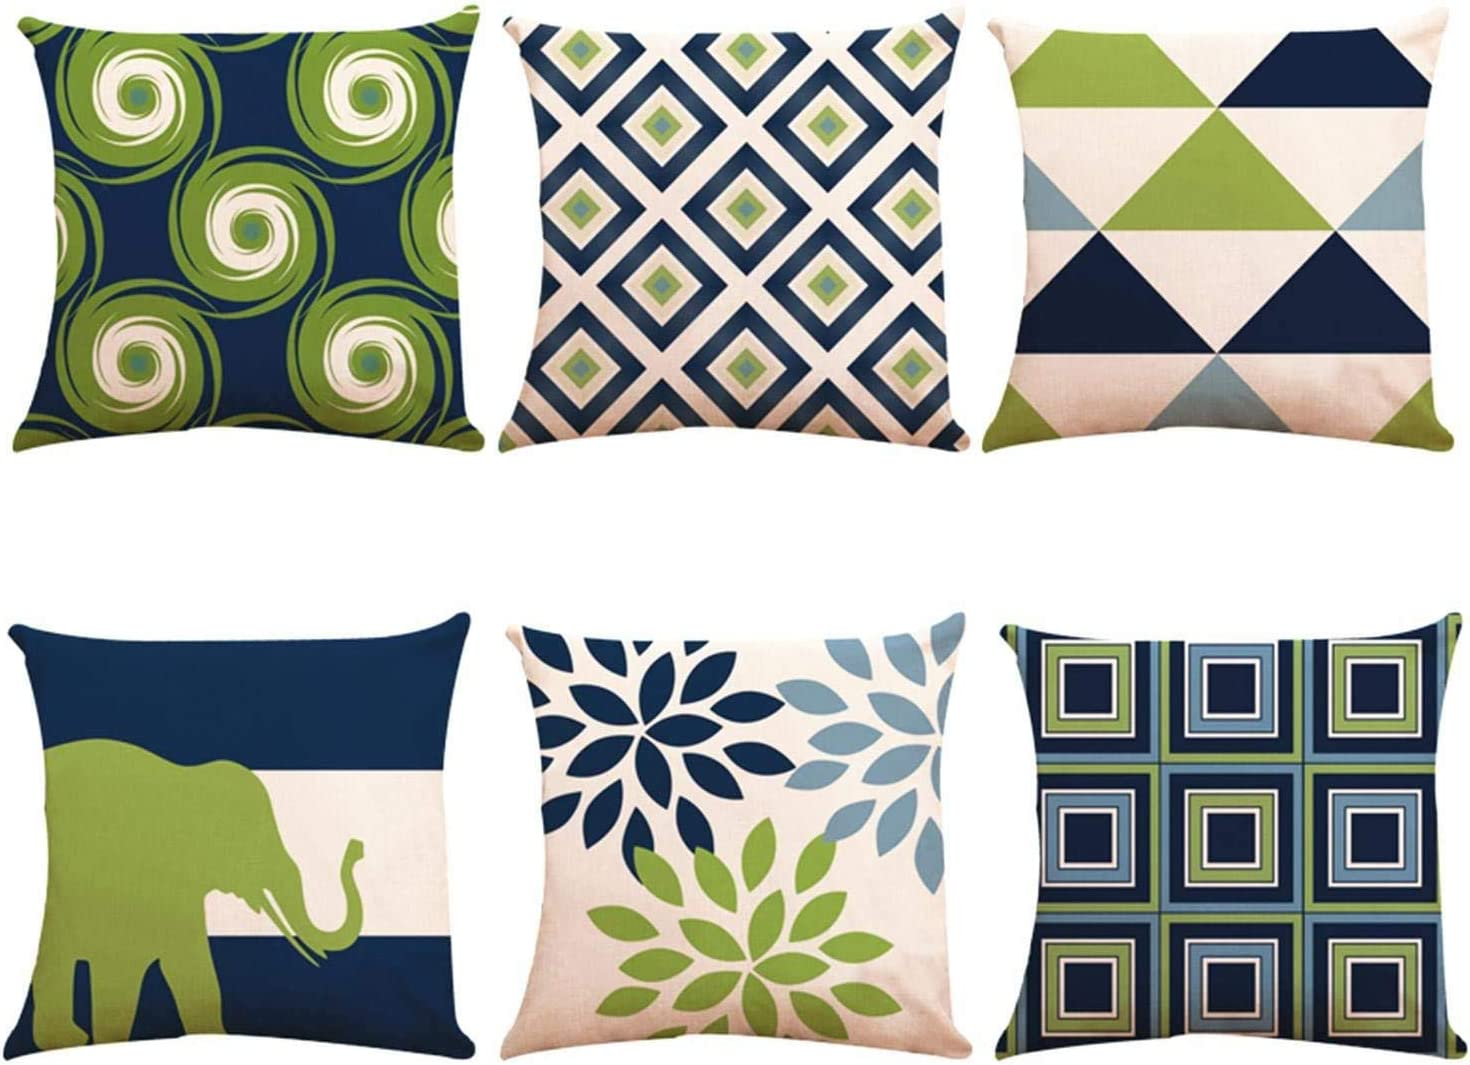 Decorative Throw Pillow Covers 20 x 20 Inch Double Side Design,ZUEXT Set of 6 Geometric Cotton Linen Indoor Outdoor Pillow Case Cushion Cover for Car Sofa Home Decor(Navy Pear Green New Living Series)